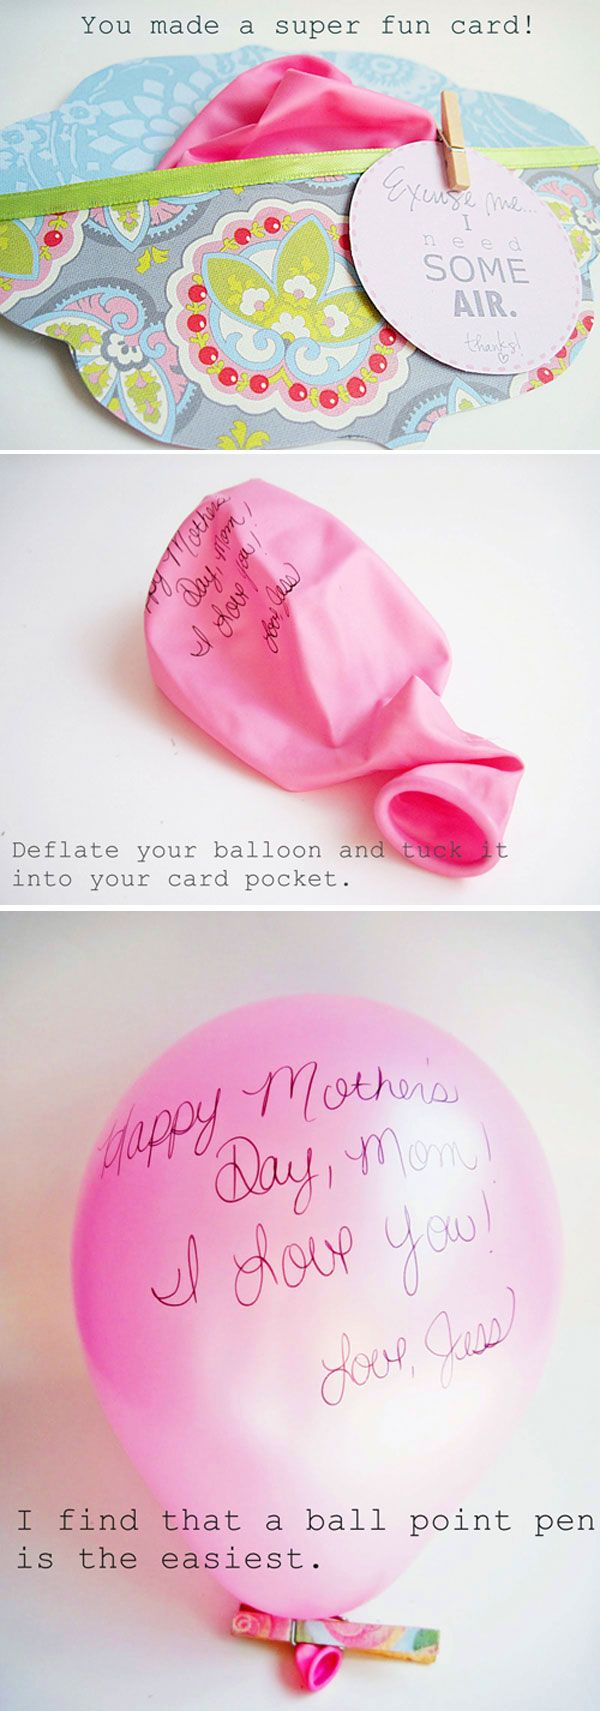 Balloon party invitation birthday card mothers or